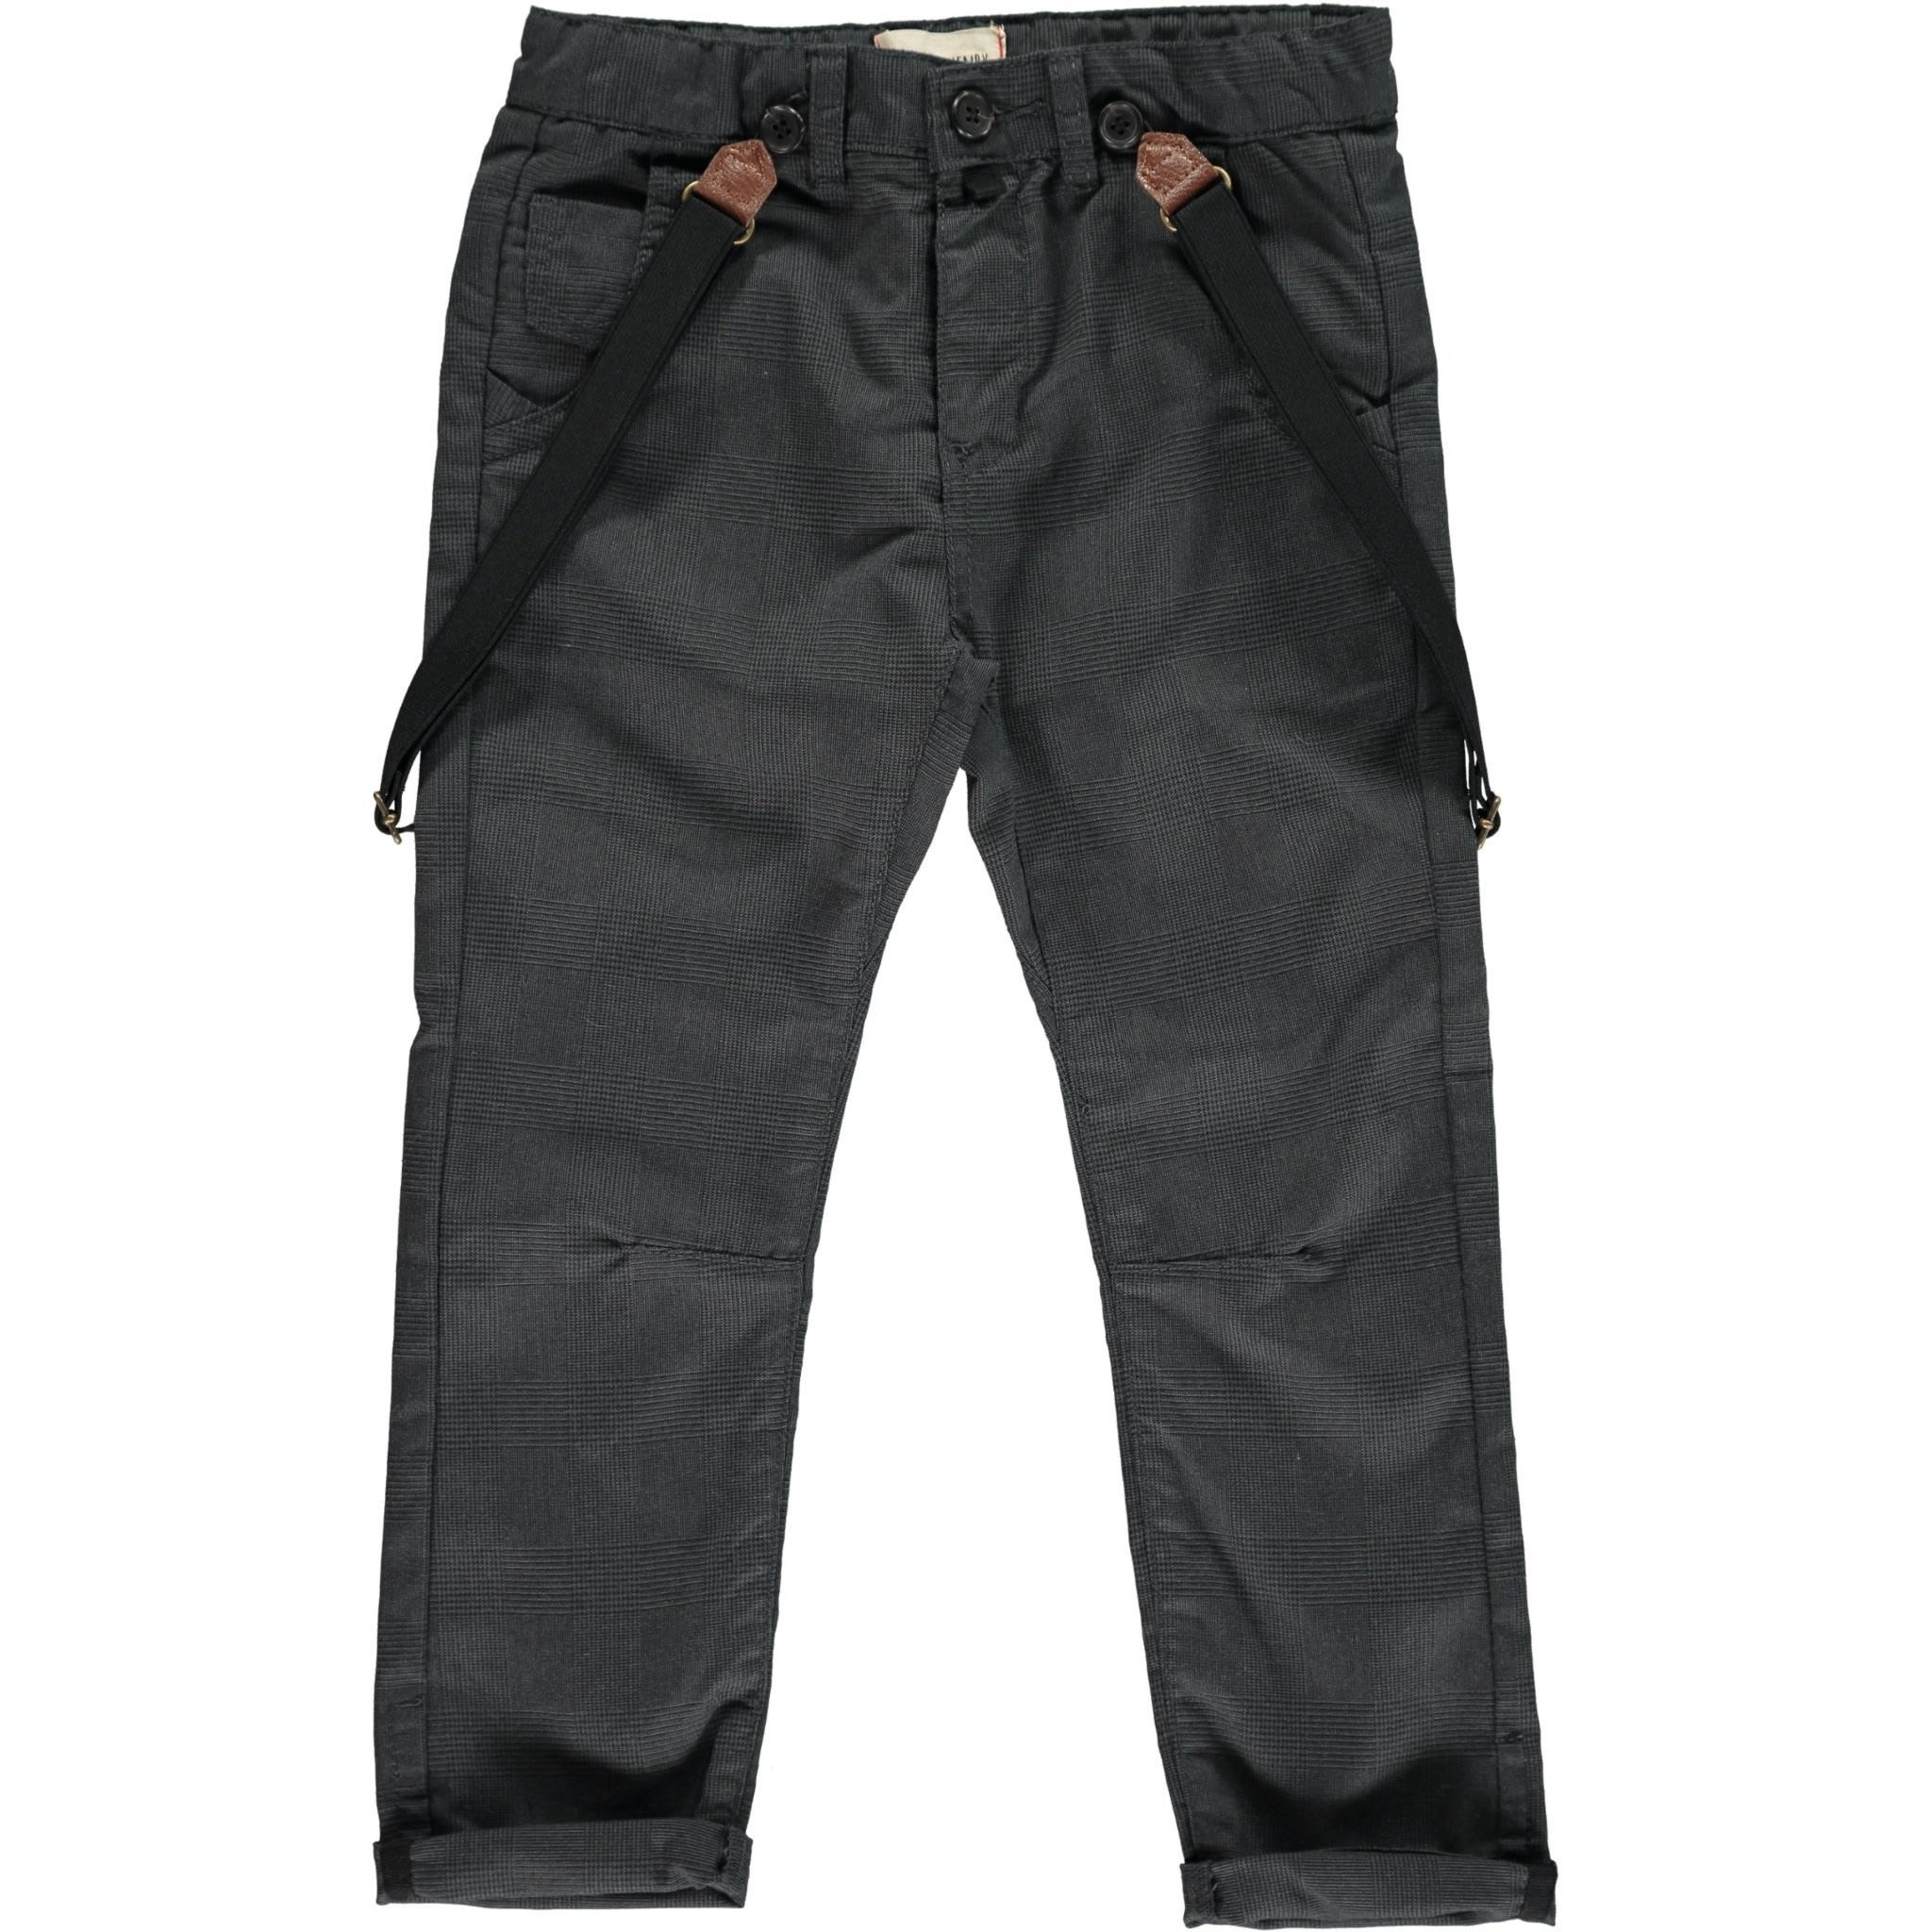 Me & Henry Black Dogtooth Woven Trousers